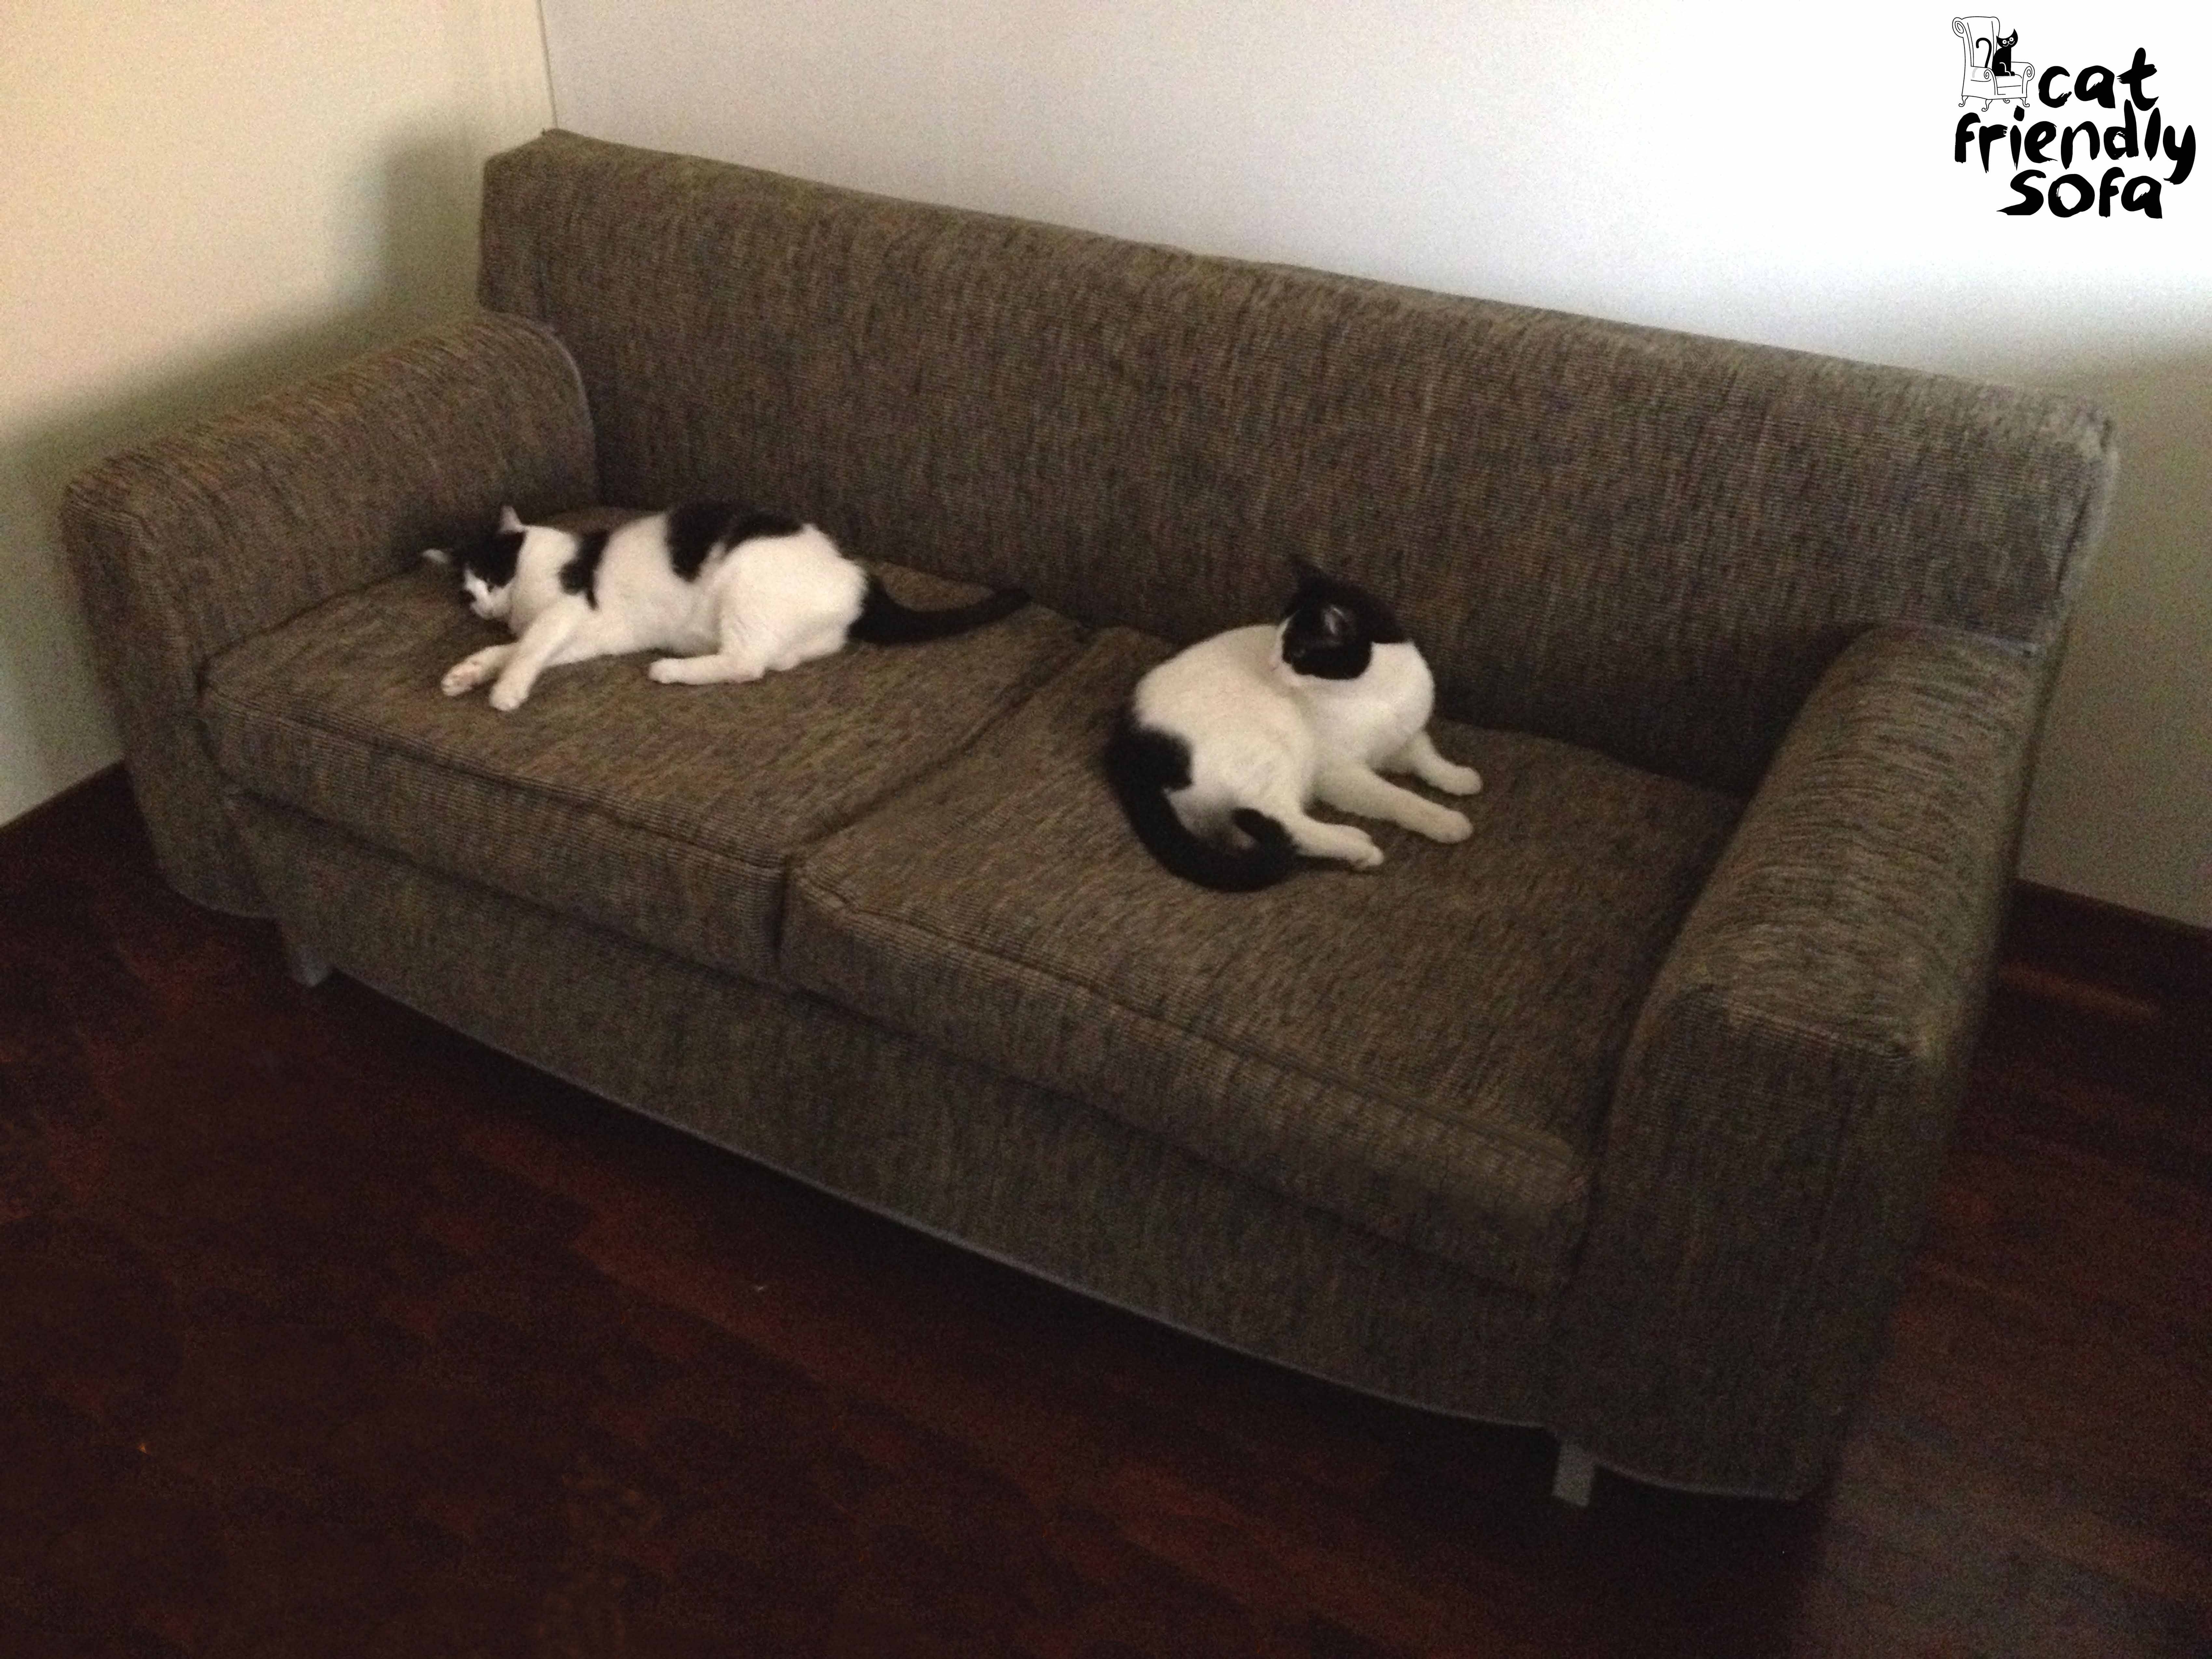 Reviews On Cat Proof Sofa Covers | Cat Friendly Sofa Pertaining To Cat Proof Sofas (View 11 of 15)